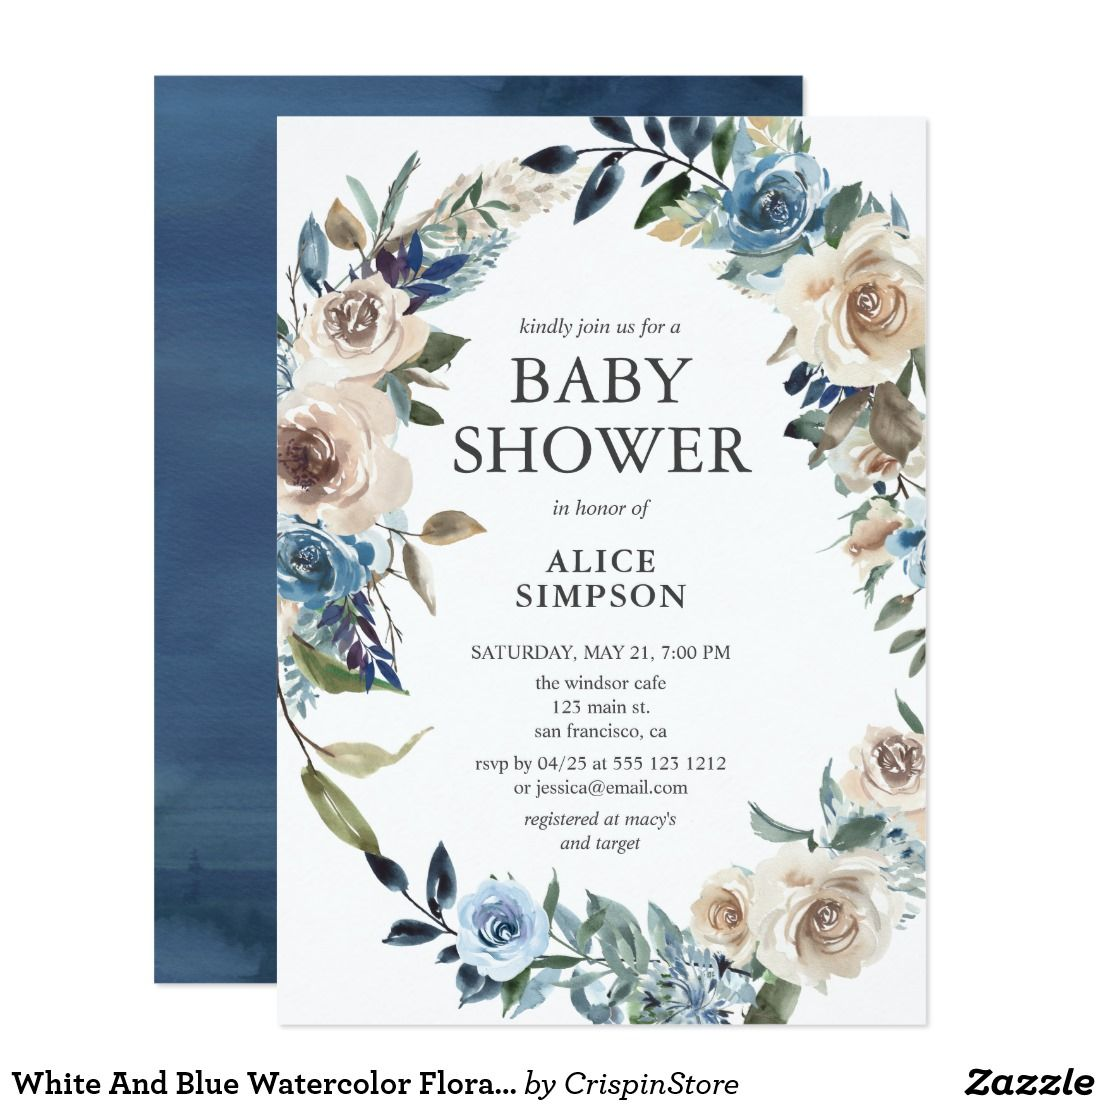 White And Blue Watercolor Floral Baby Shower Invitation. #Ad #babyshower |  Floral baby shower invitations, Floral baby shower, Baby shower invitations